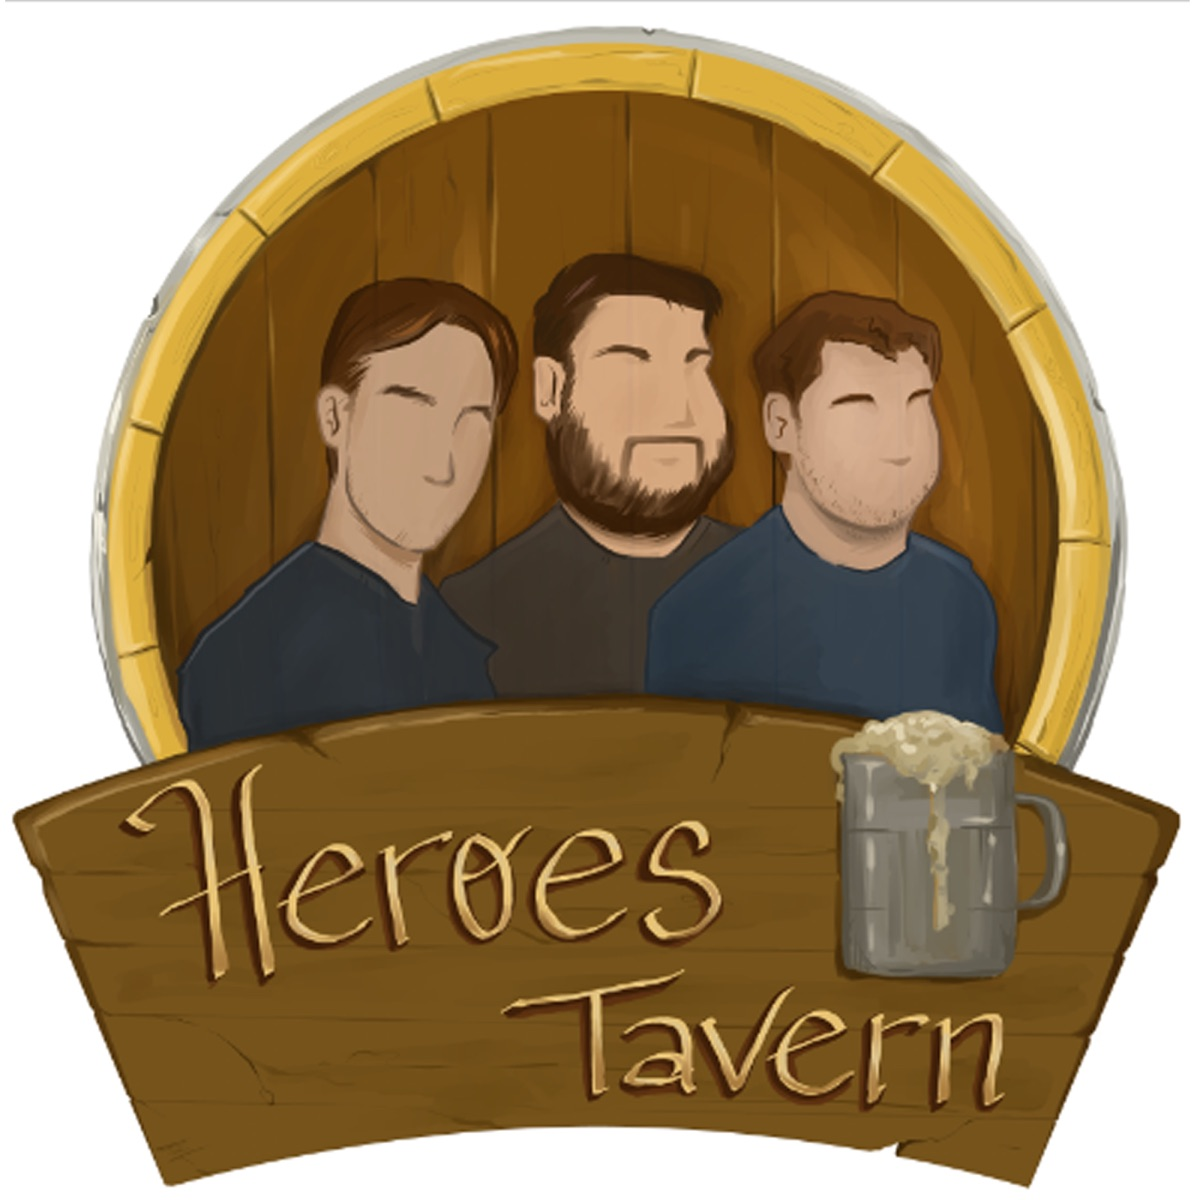 The Heroes Tavern